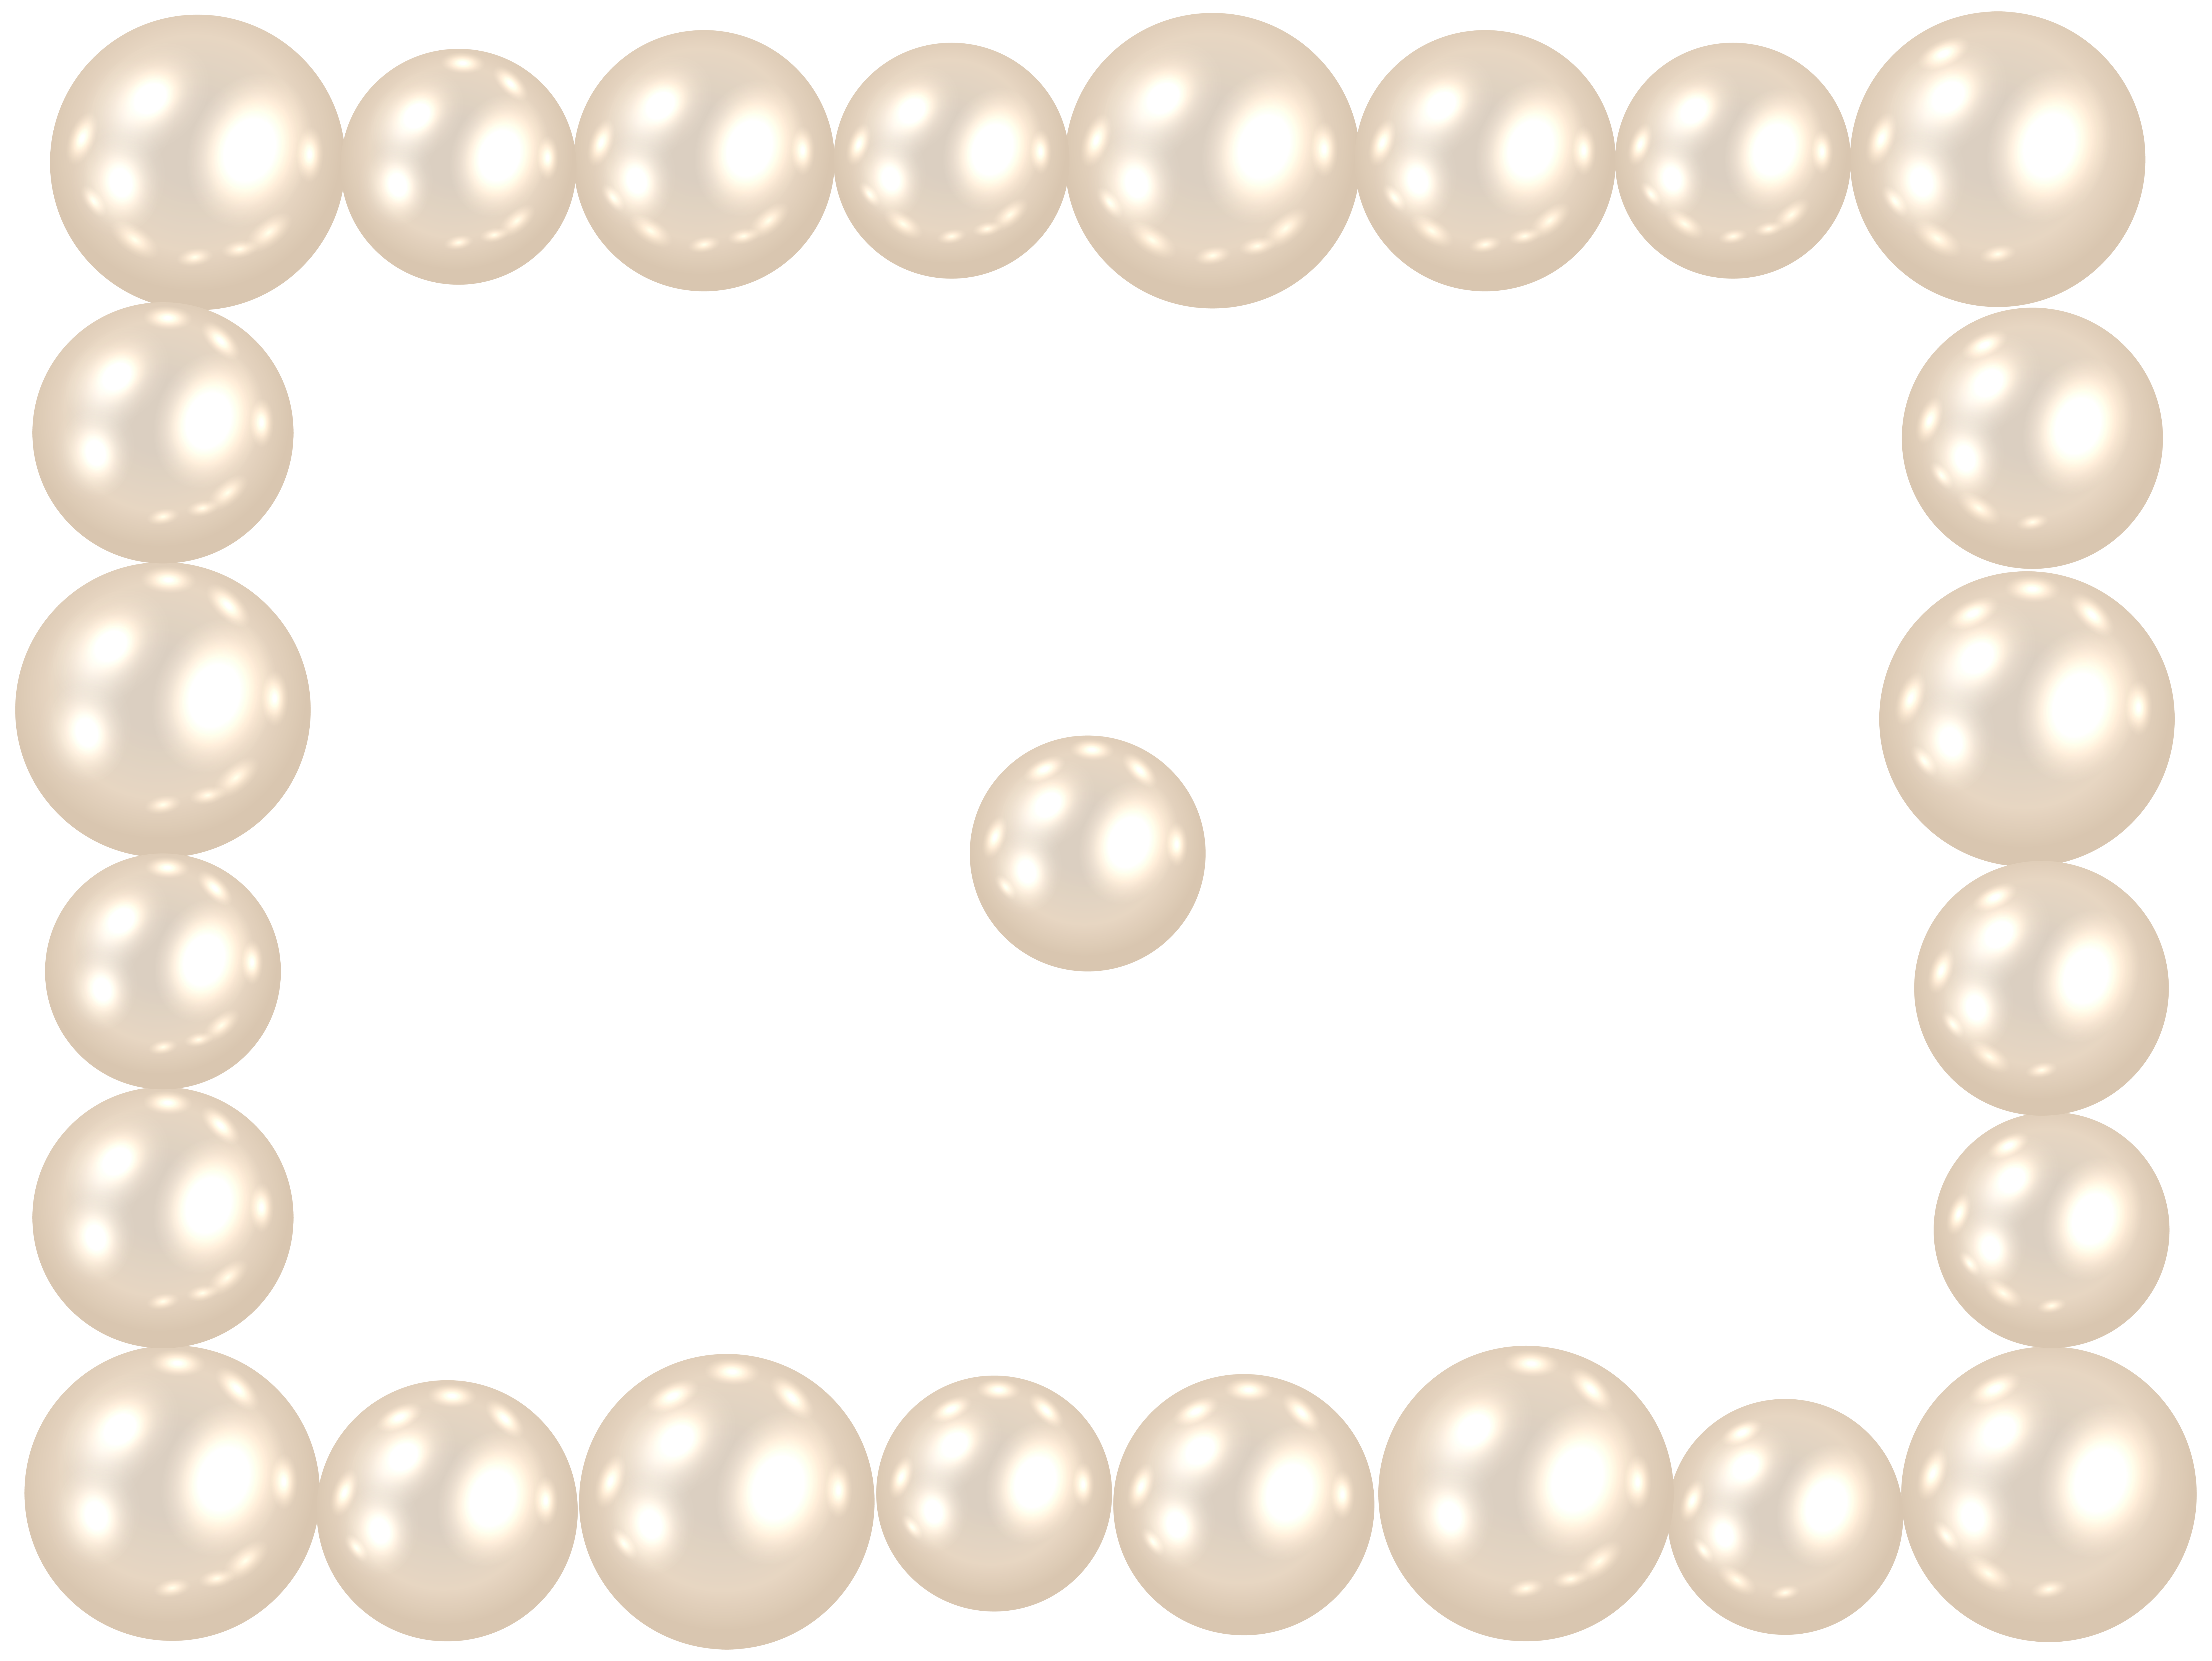 8000x6006 Pearl Frame Png Clip Art Imageu200b Gallery Yopriceville